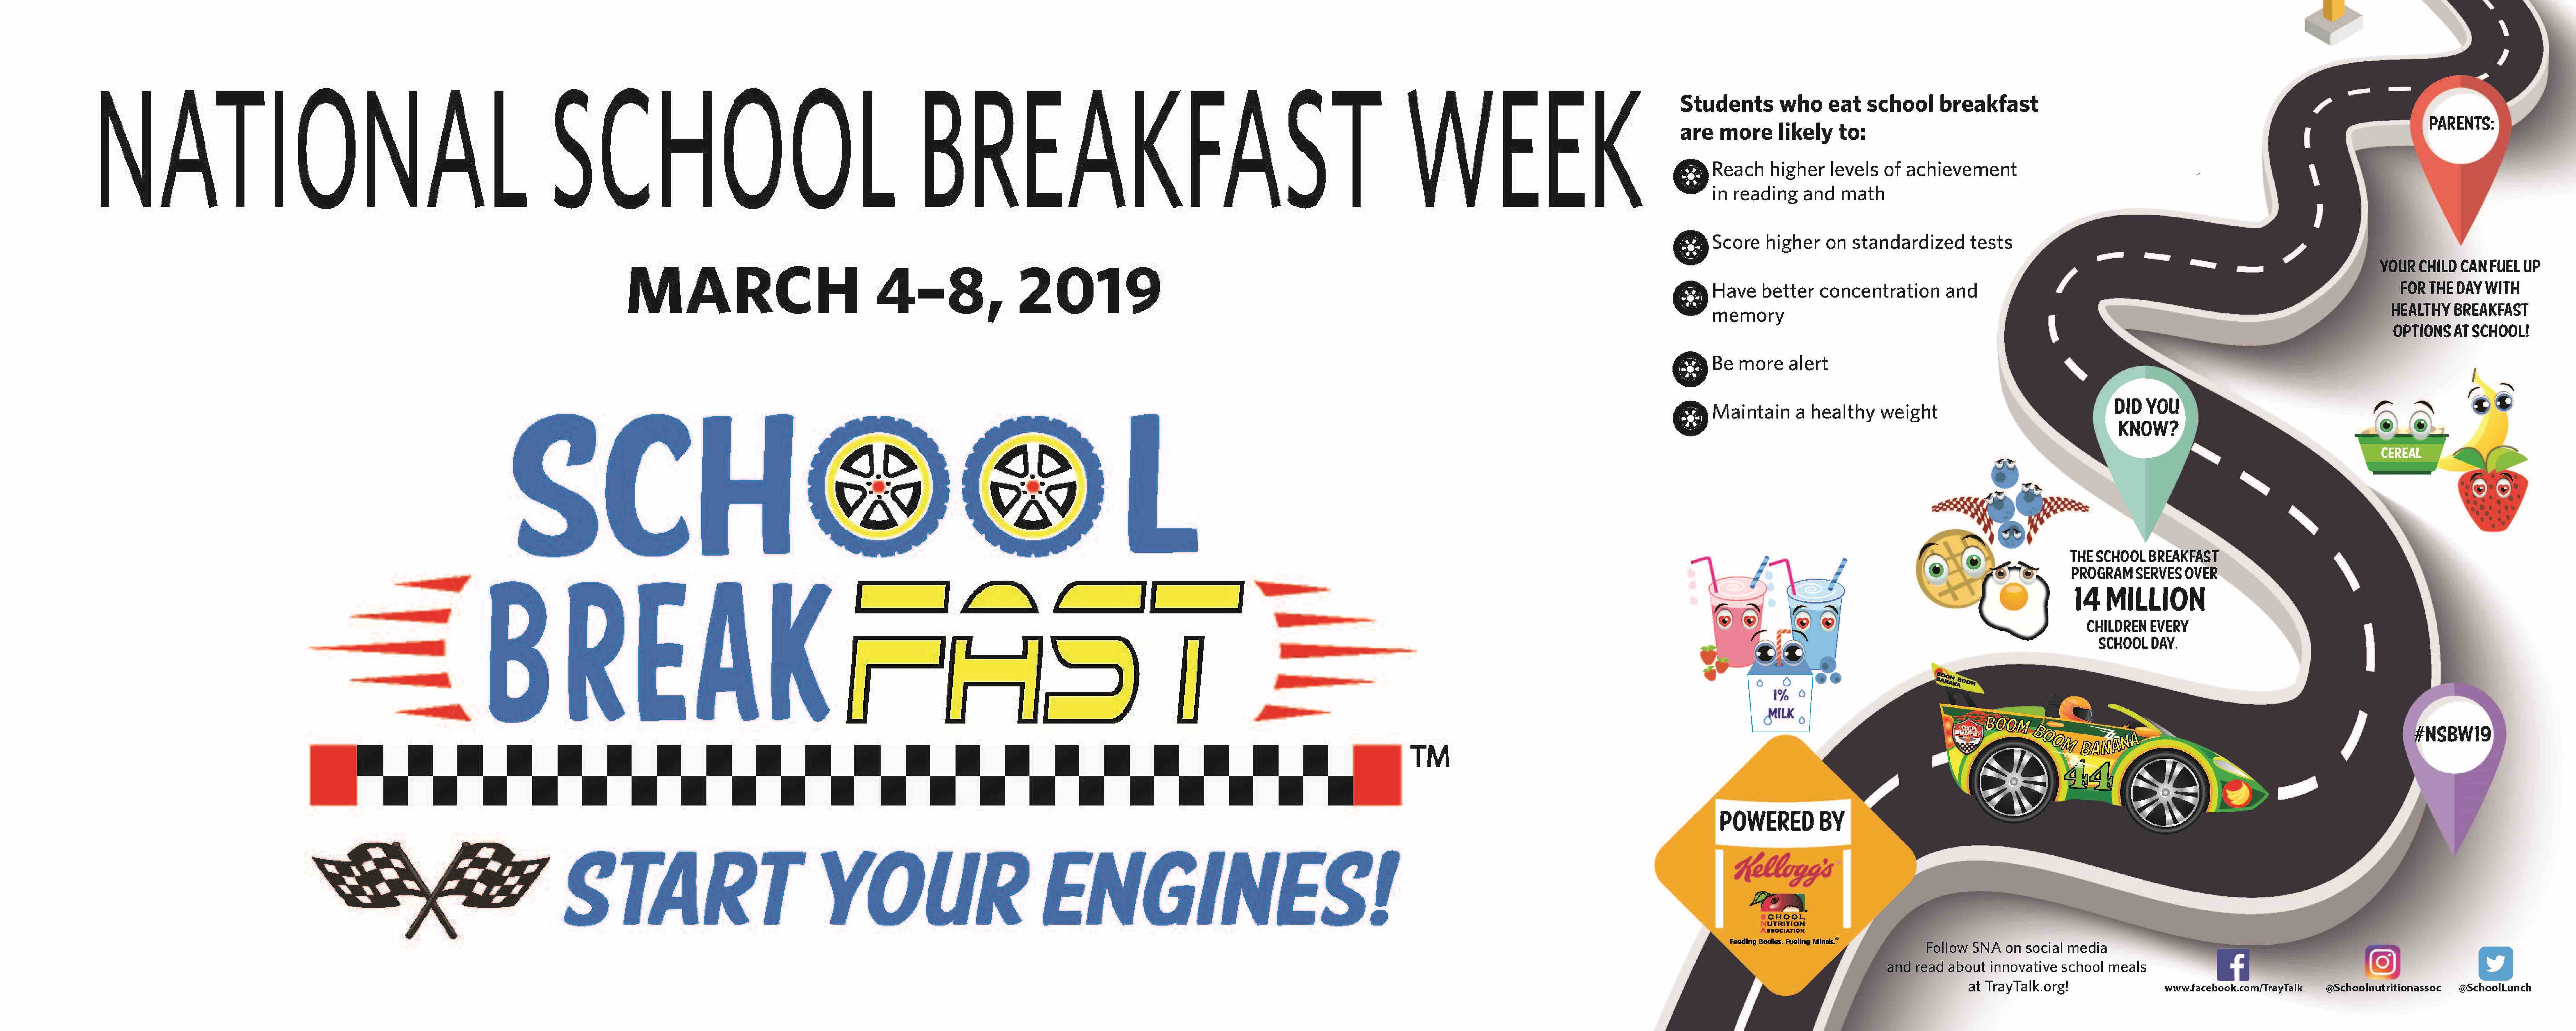 Territory Schools Celebrate National School Breakfast Week March 4-8